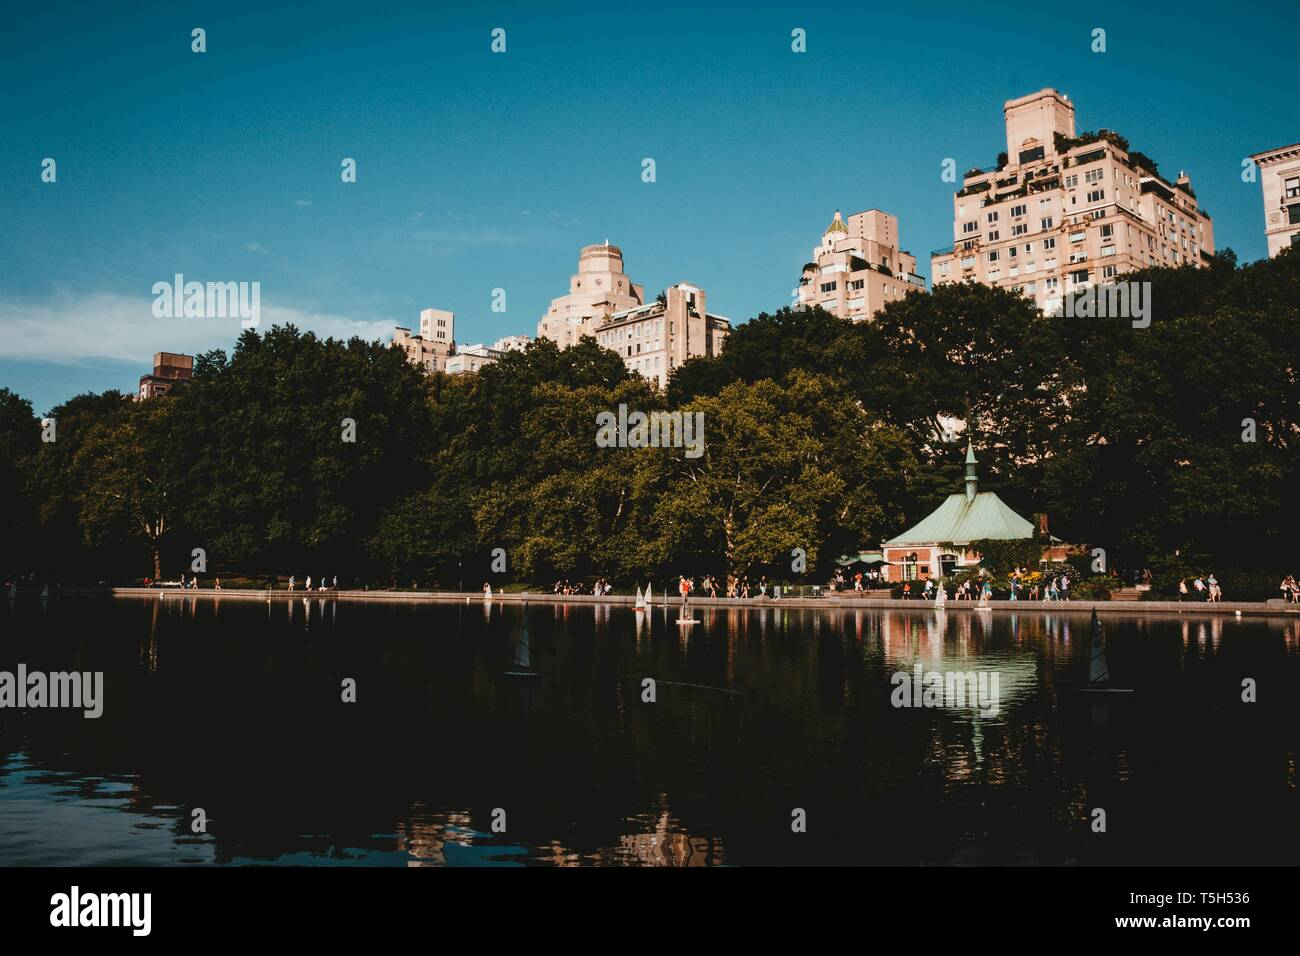 A reflecting lake in a park with tall buildings, trees and a beautiful sky Stock Photo